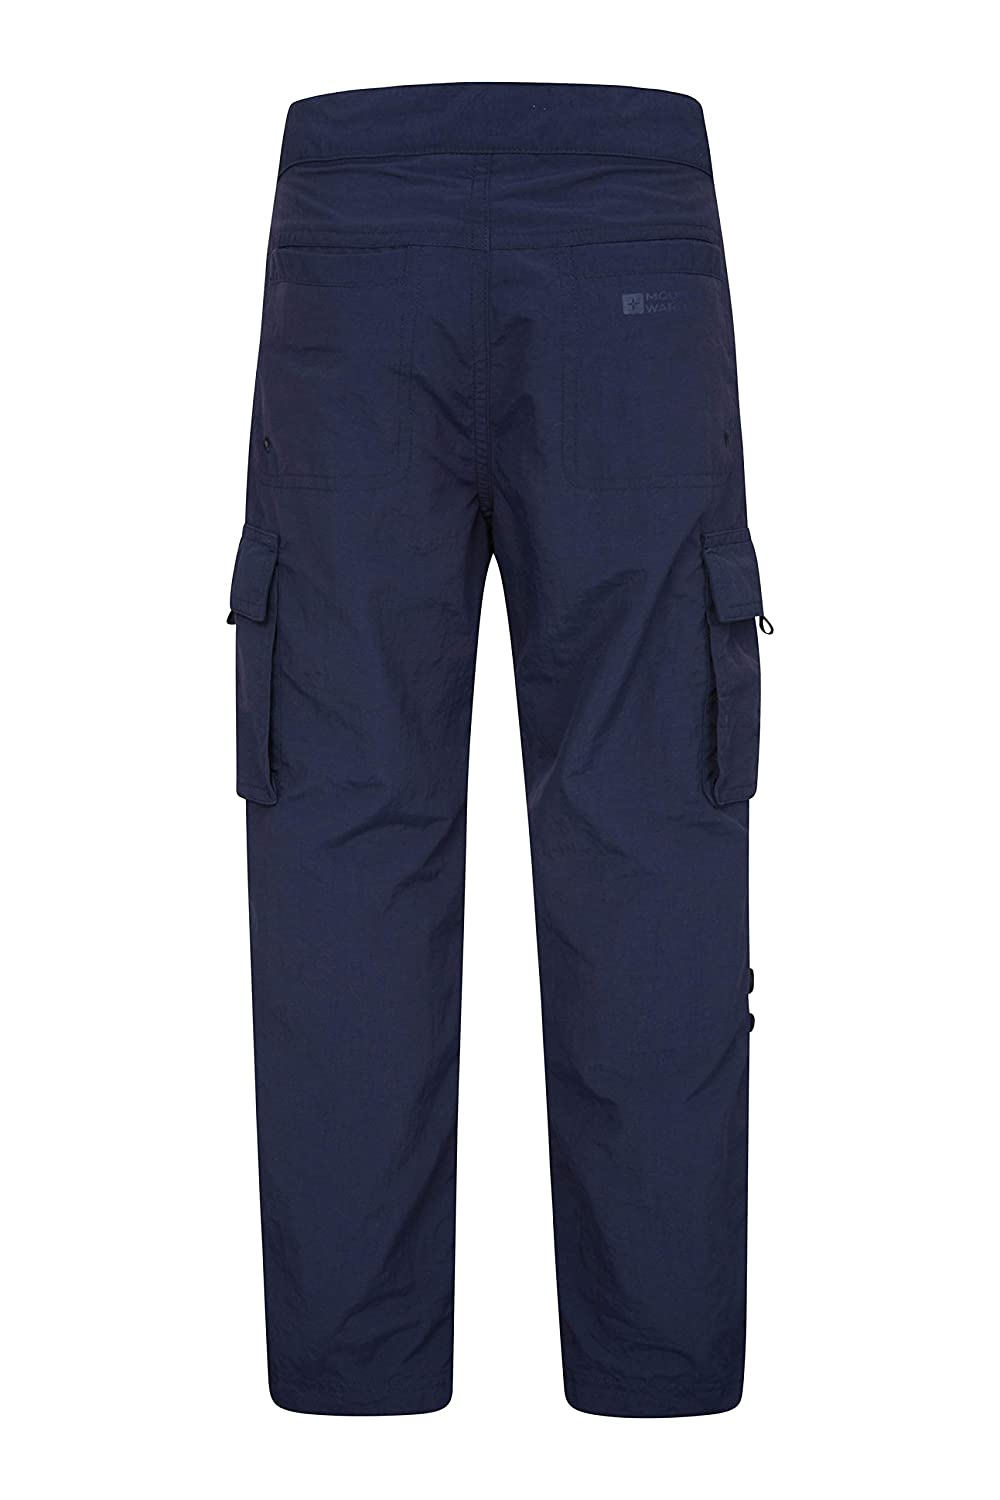 Mountain Warehouse Tab Detail Kids Pants Hiking Navy 9-10 Years for Walking